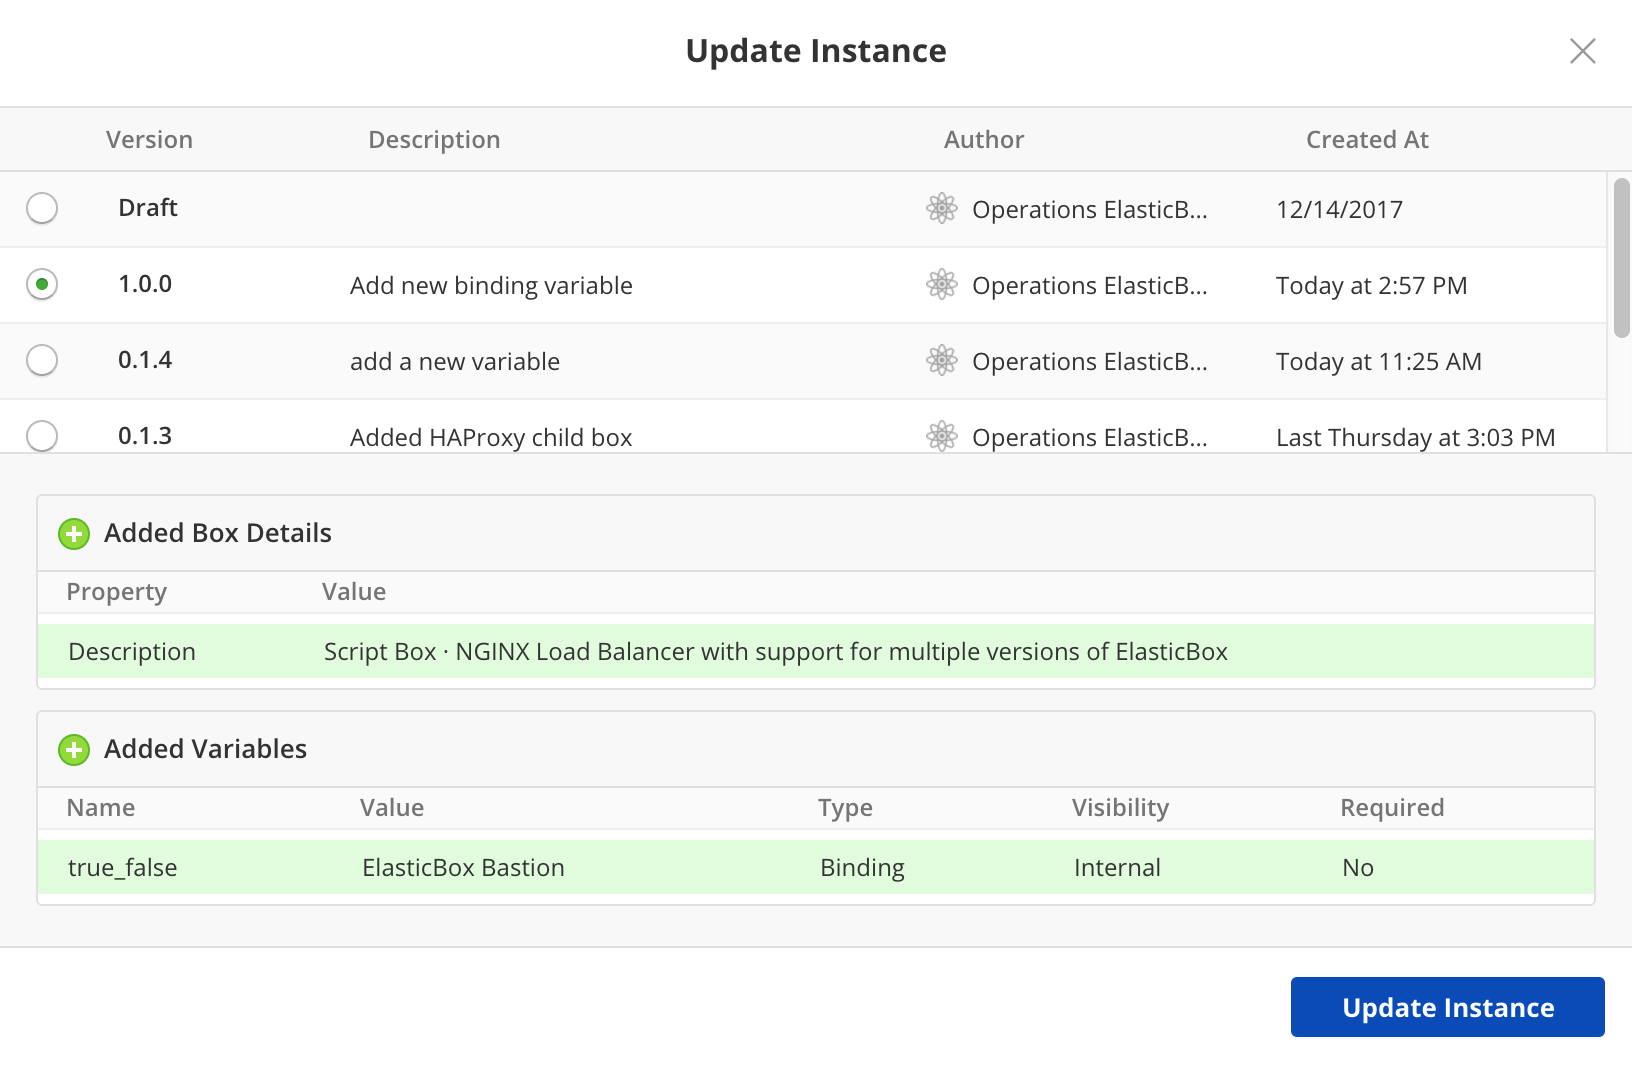 Version control - Update instance modal